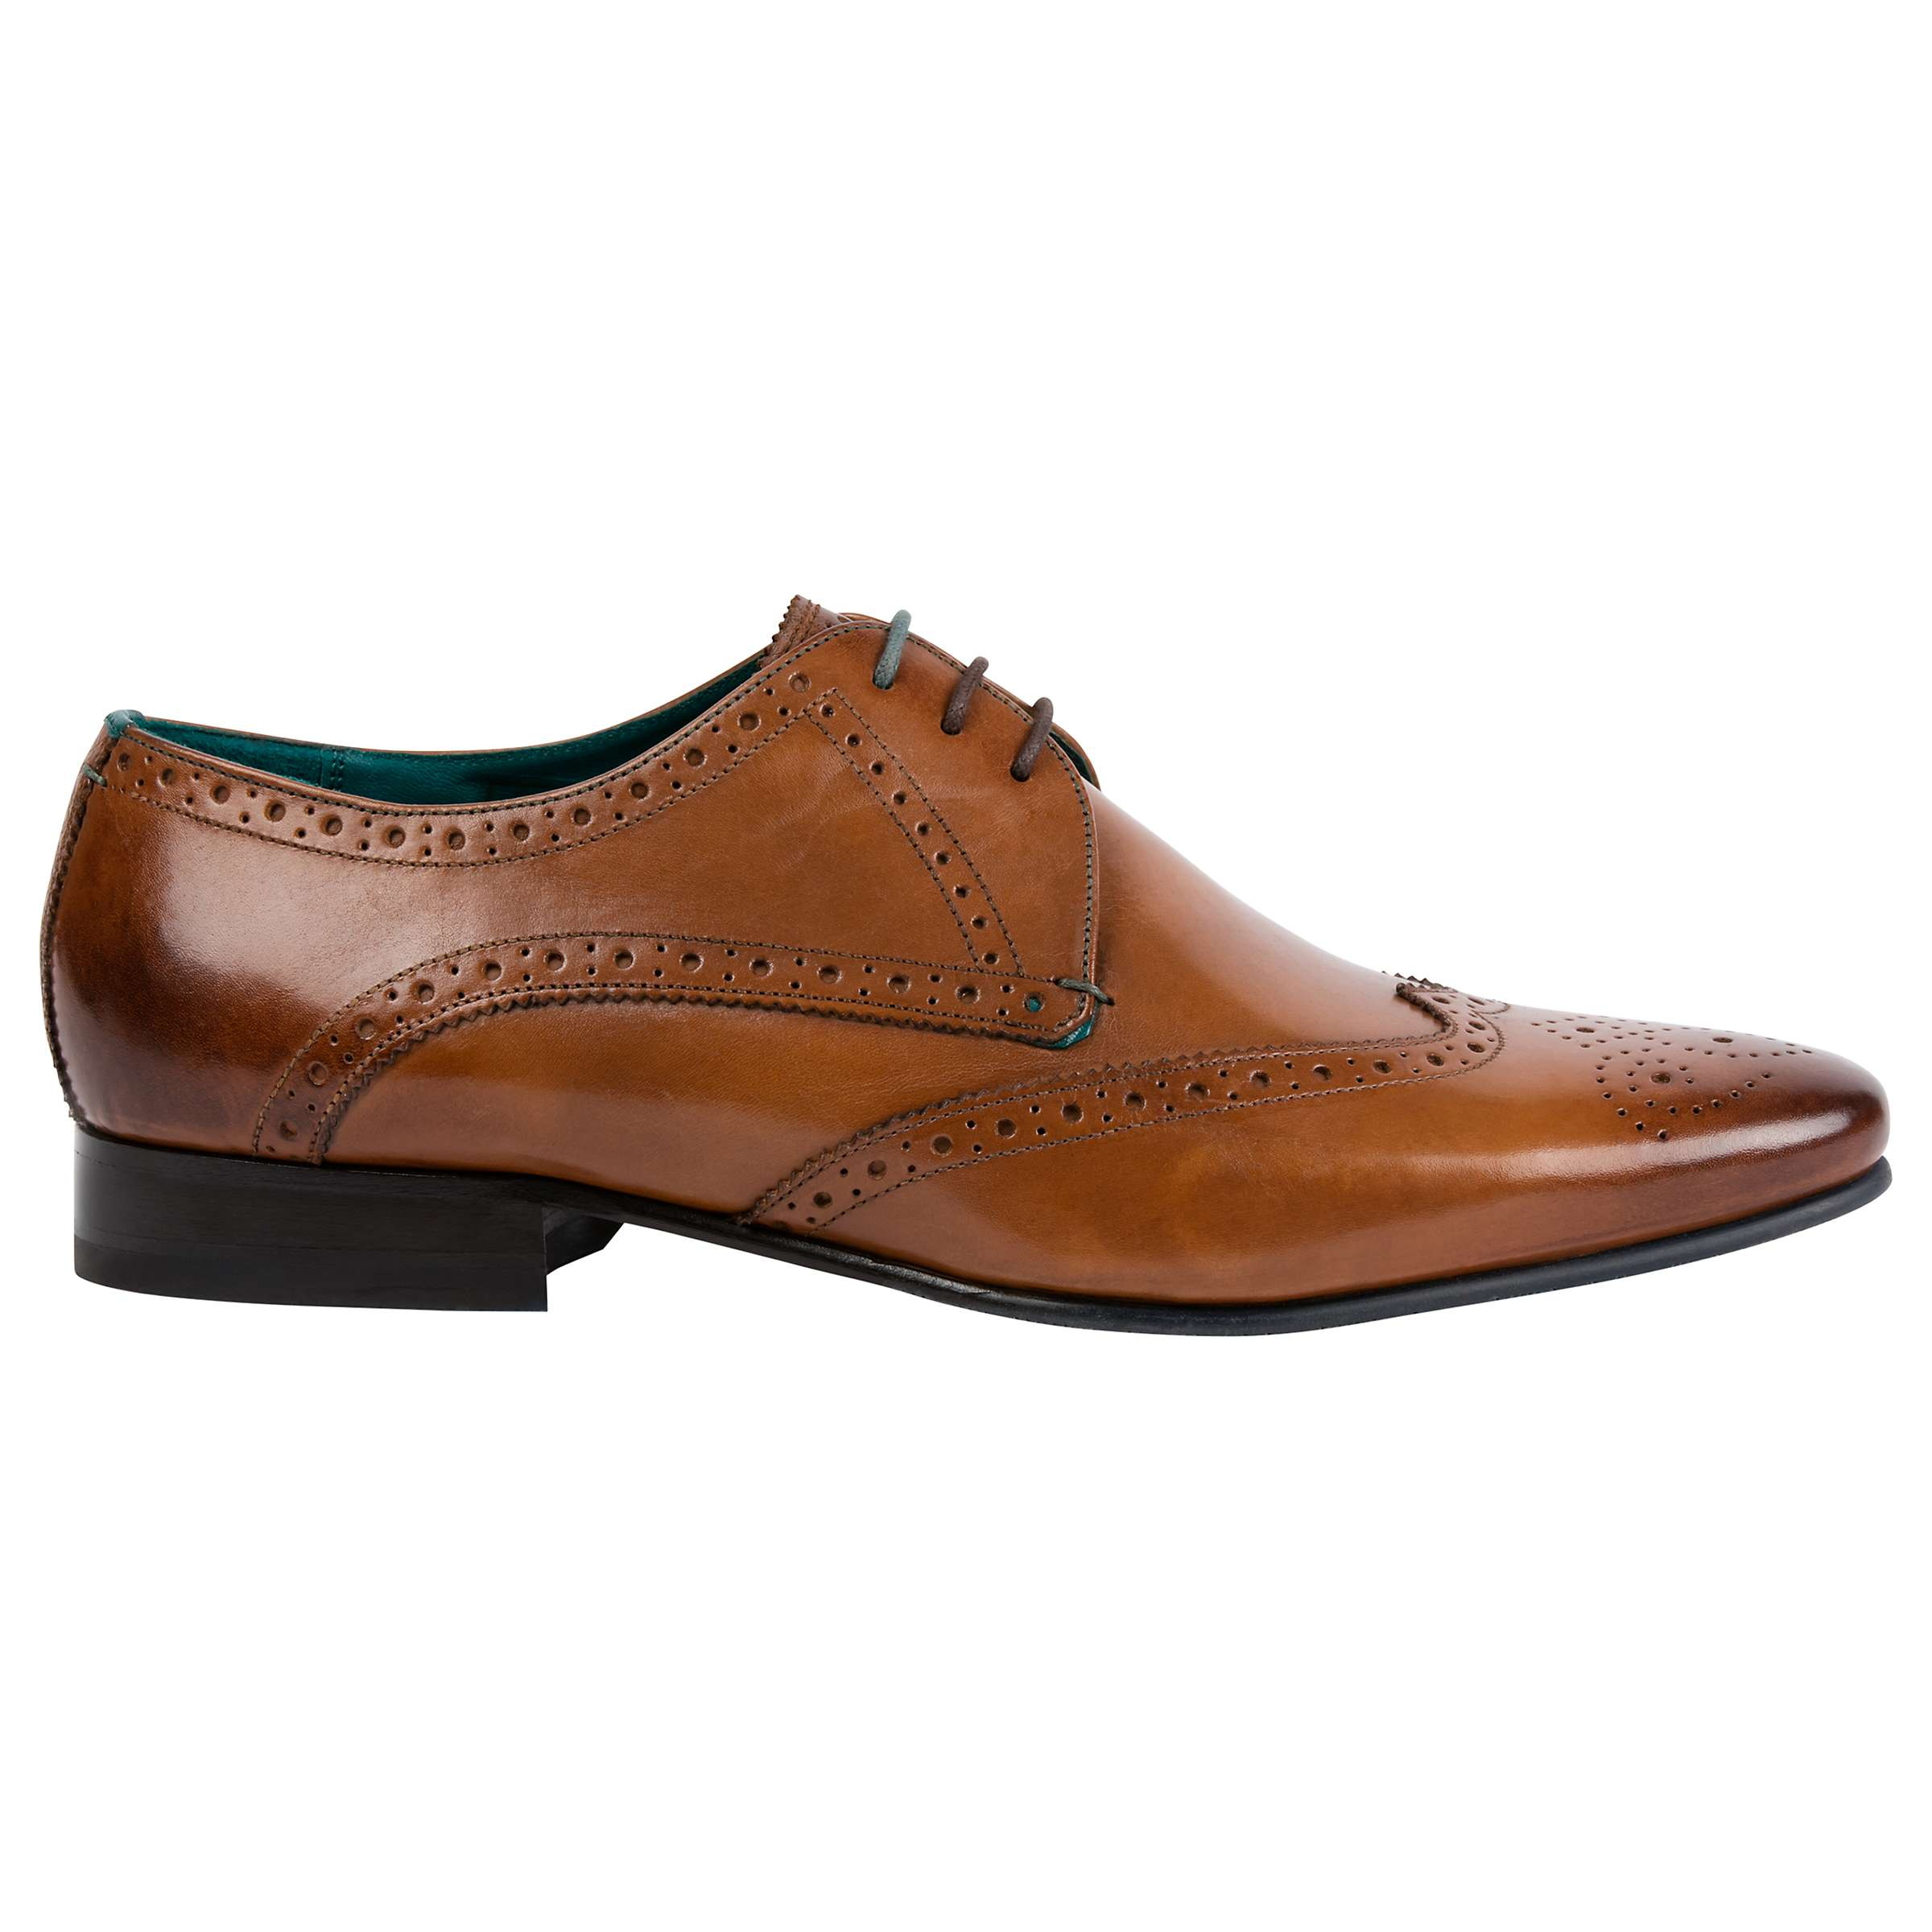 in stock outlet for sale temperament shoes Ted Baker Hosei Pointed Brogues, Tan